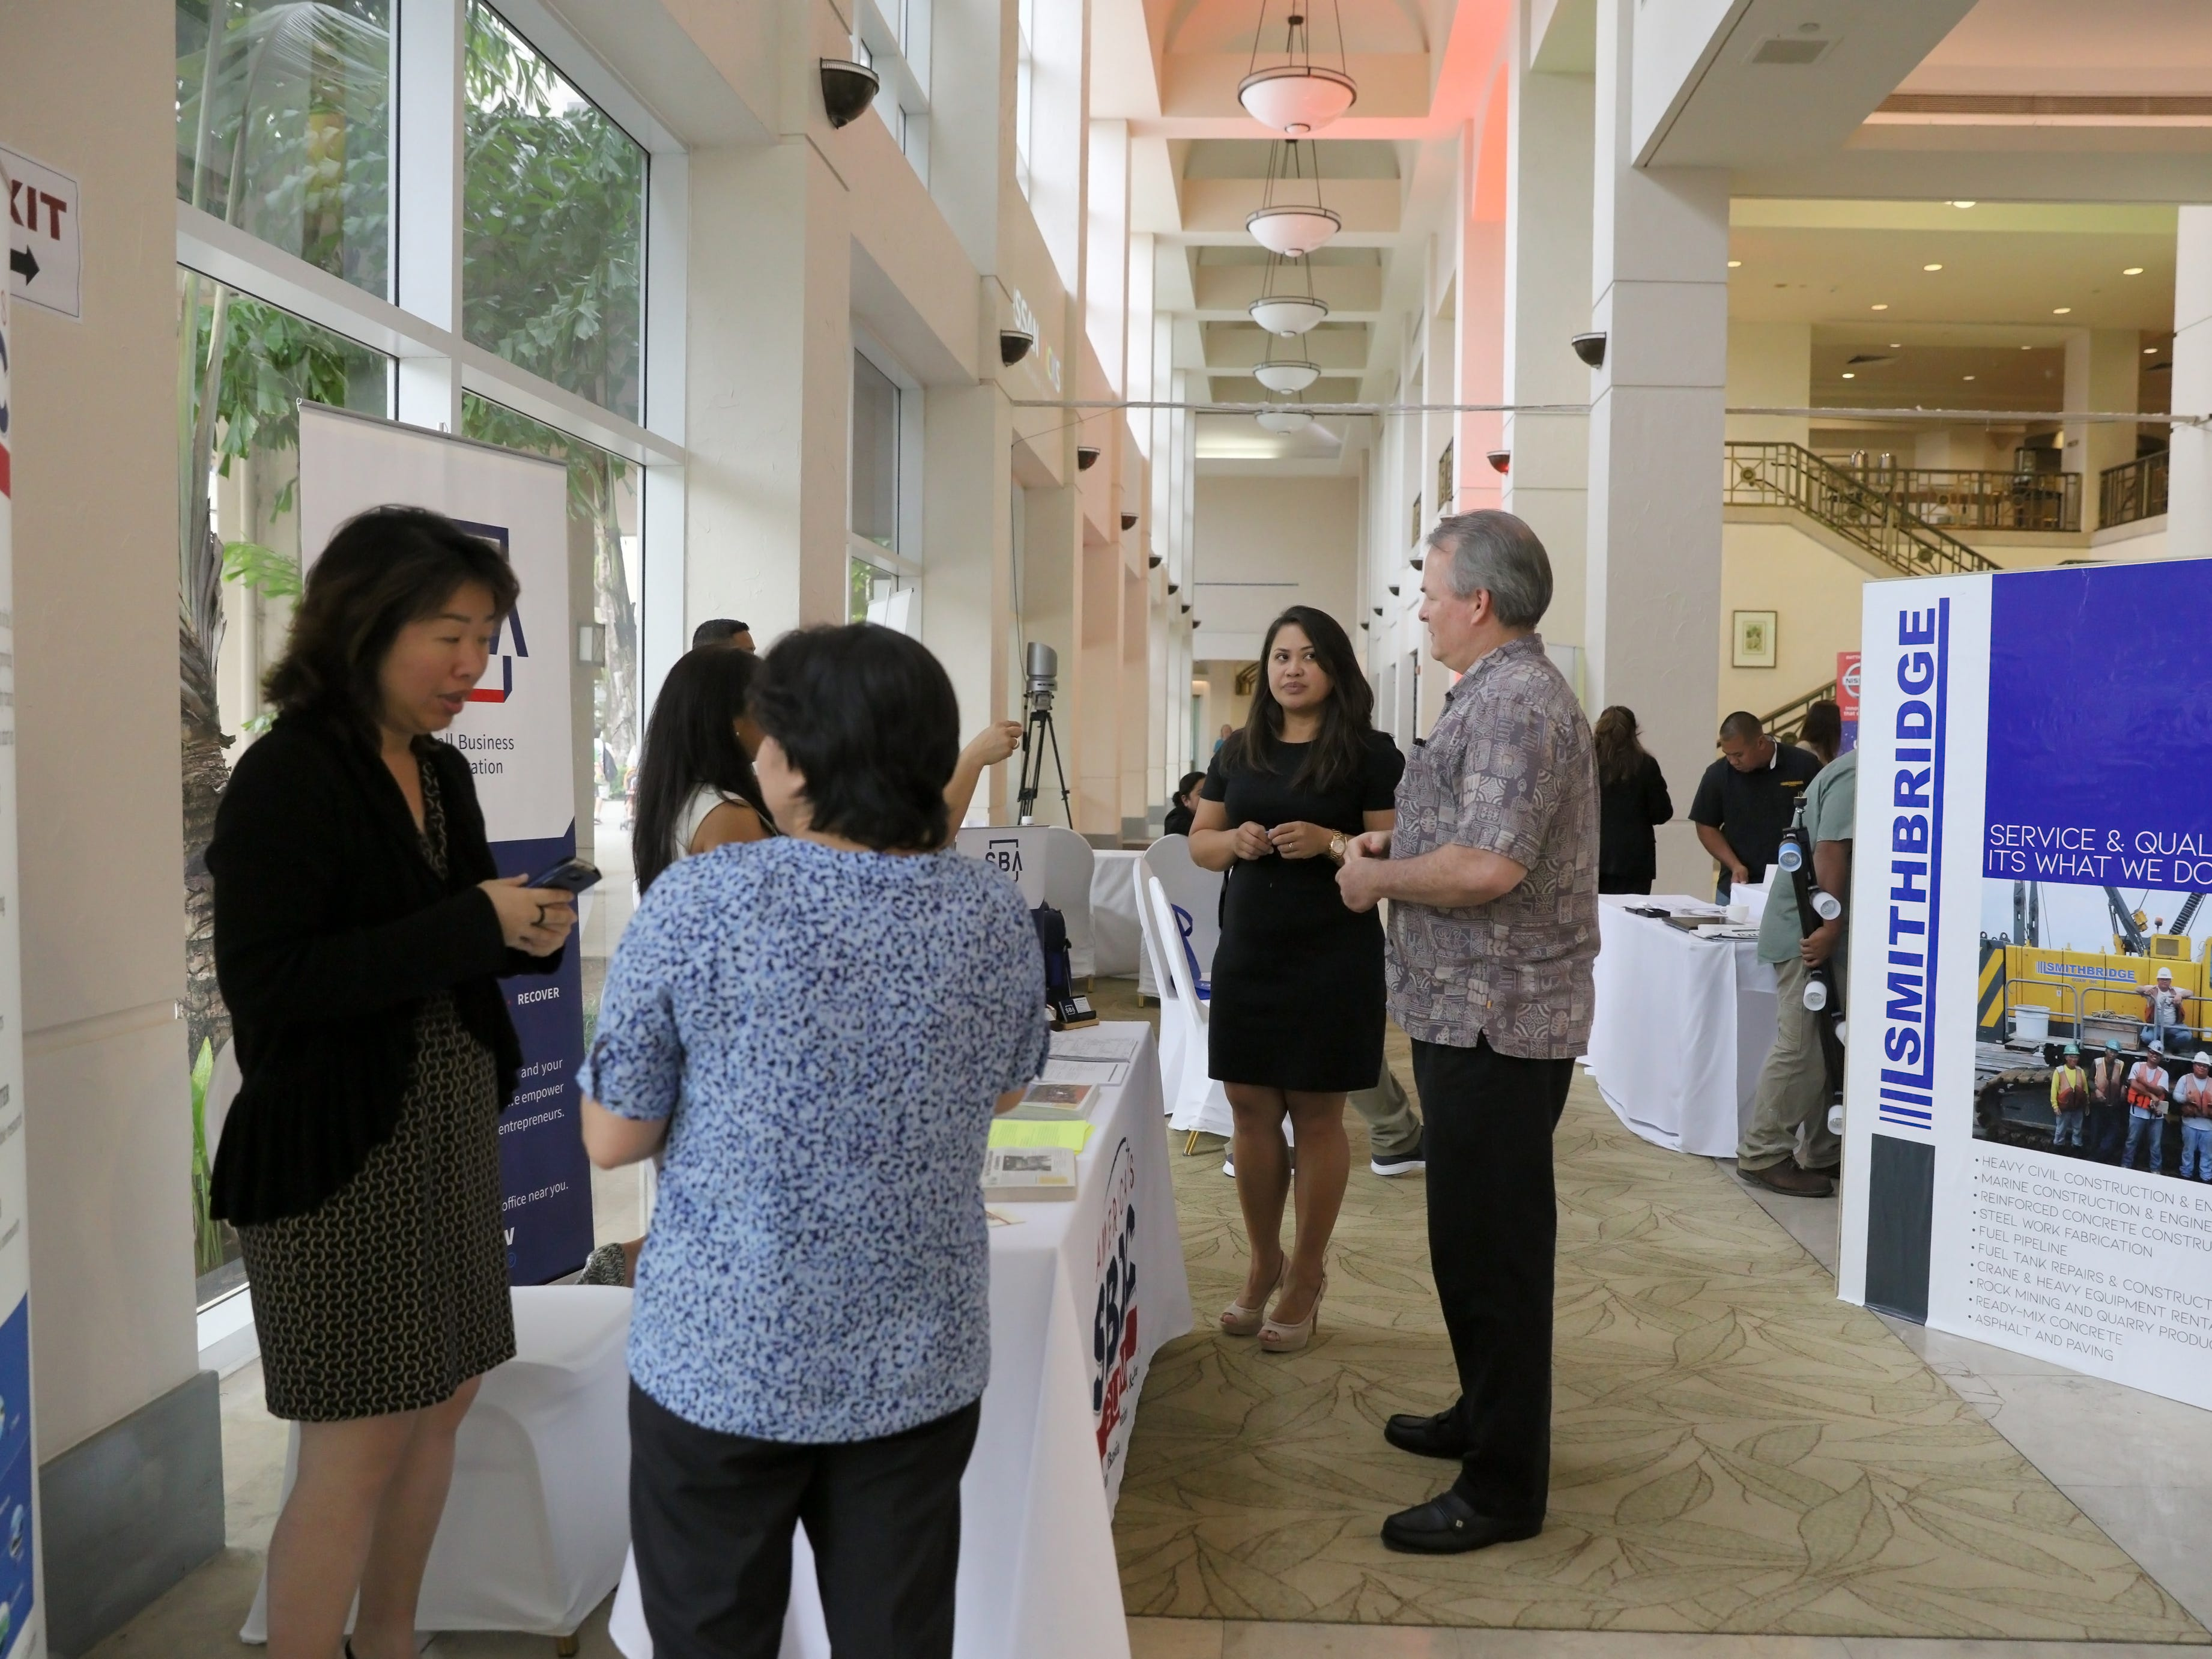 The Guam Chamber of Commerce held the Small Business Expo and Outreach at the Hyatt Regency Guam Grand Ballroom.